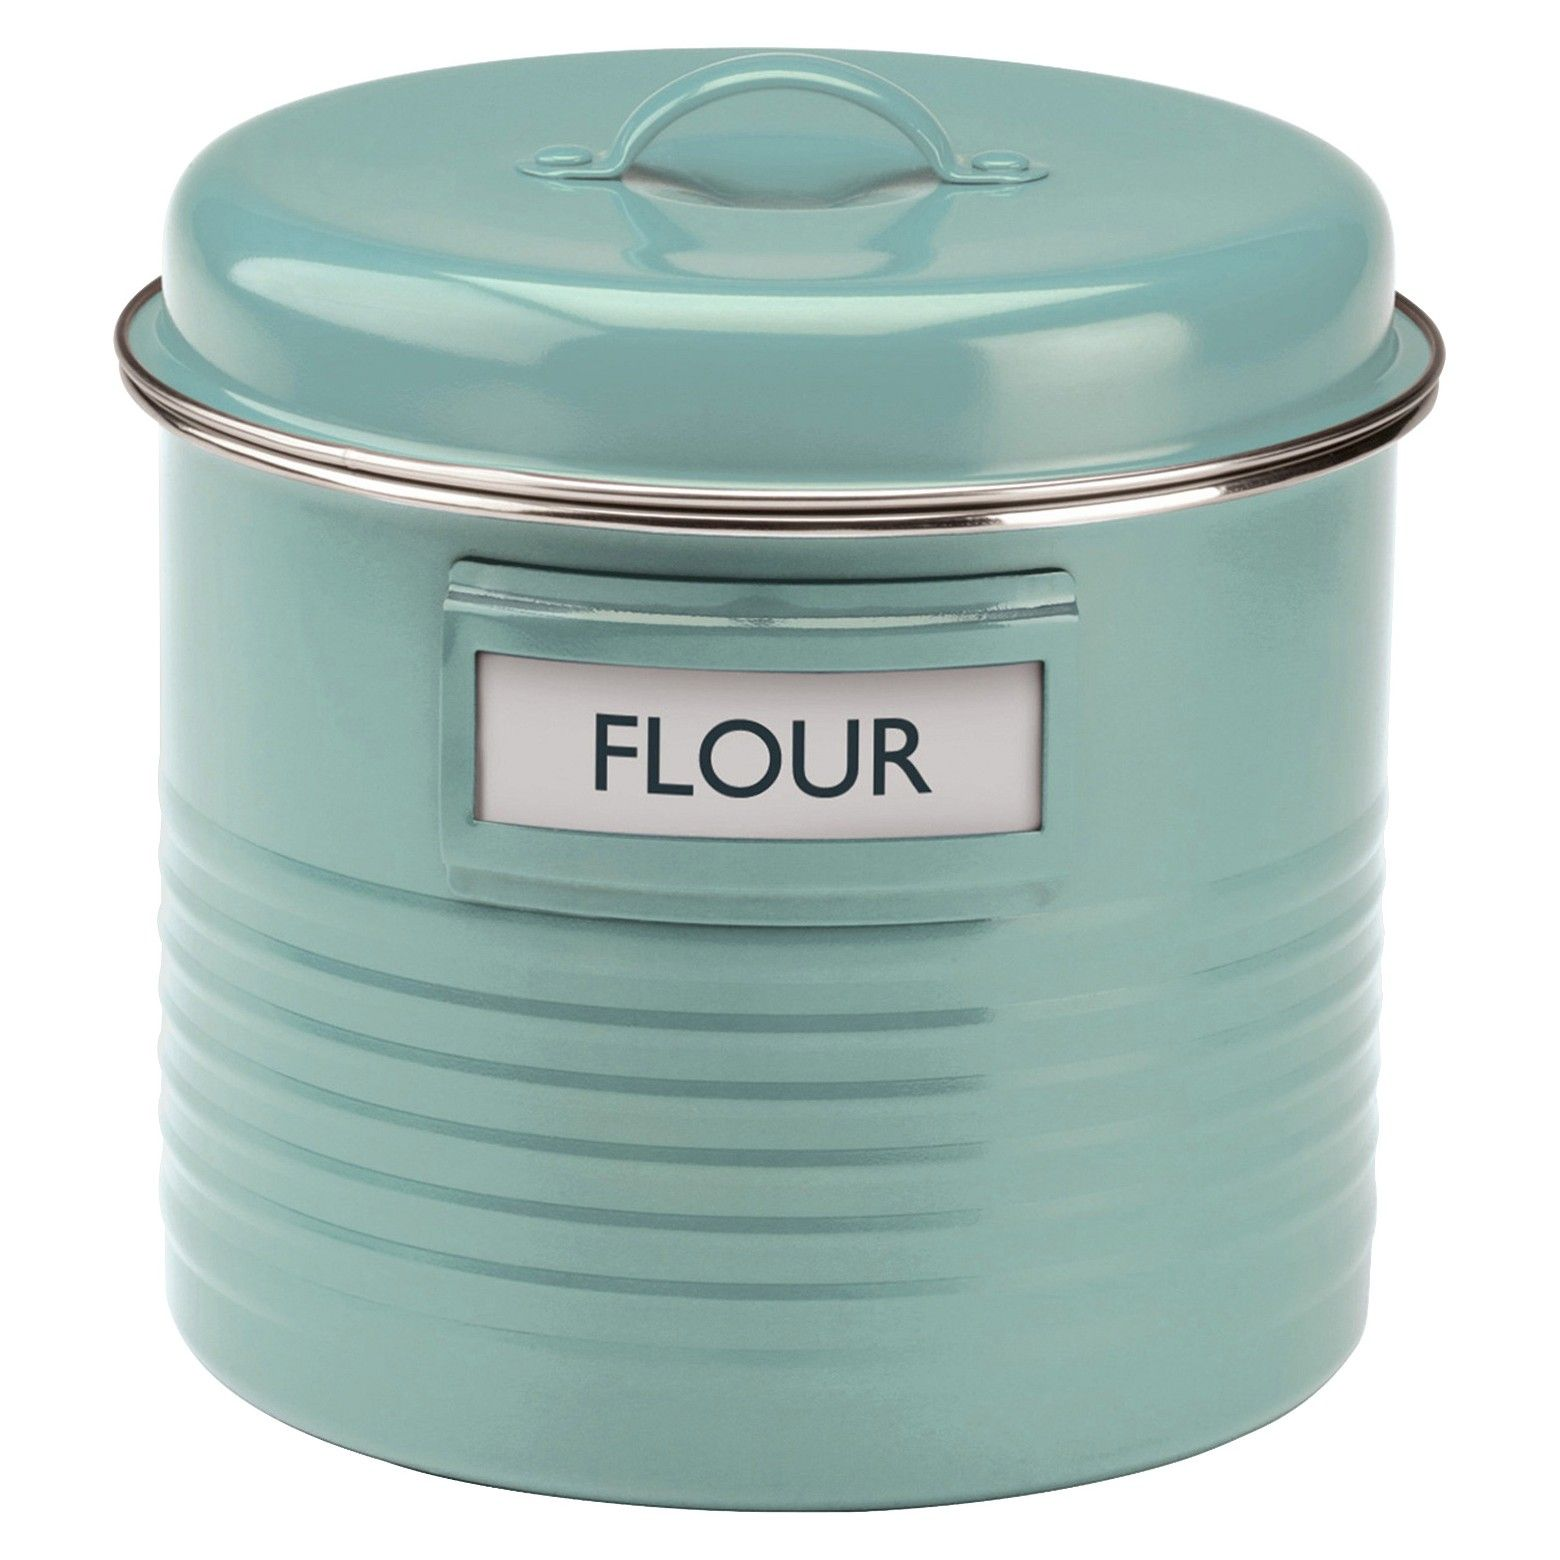 The Summer House Blue Vintage Kitchen range evokes memories of our grandparents' kitchens, but this range is definitely not old fashioned. This canister is made from enamel colour coated steel with an airtight silicone seal, interchangeable labels. It's capacity is 3.386 quarts.